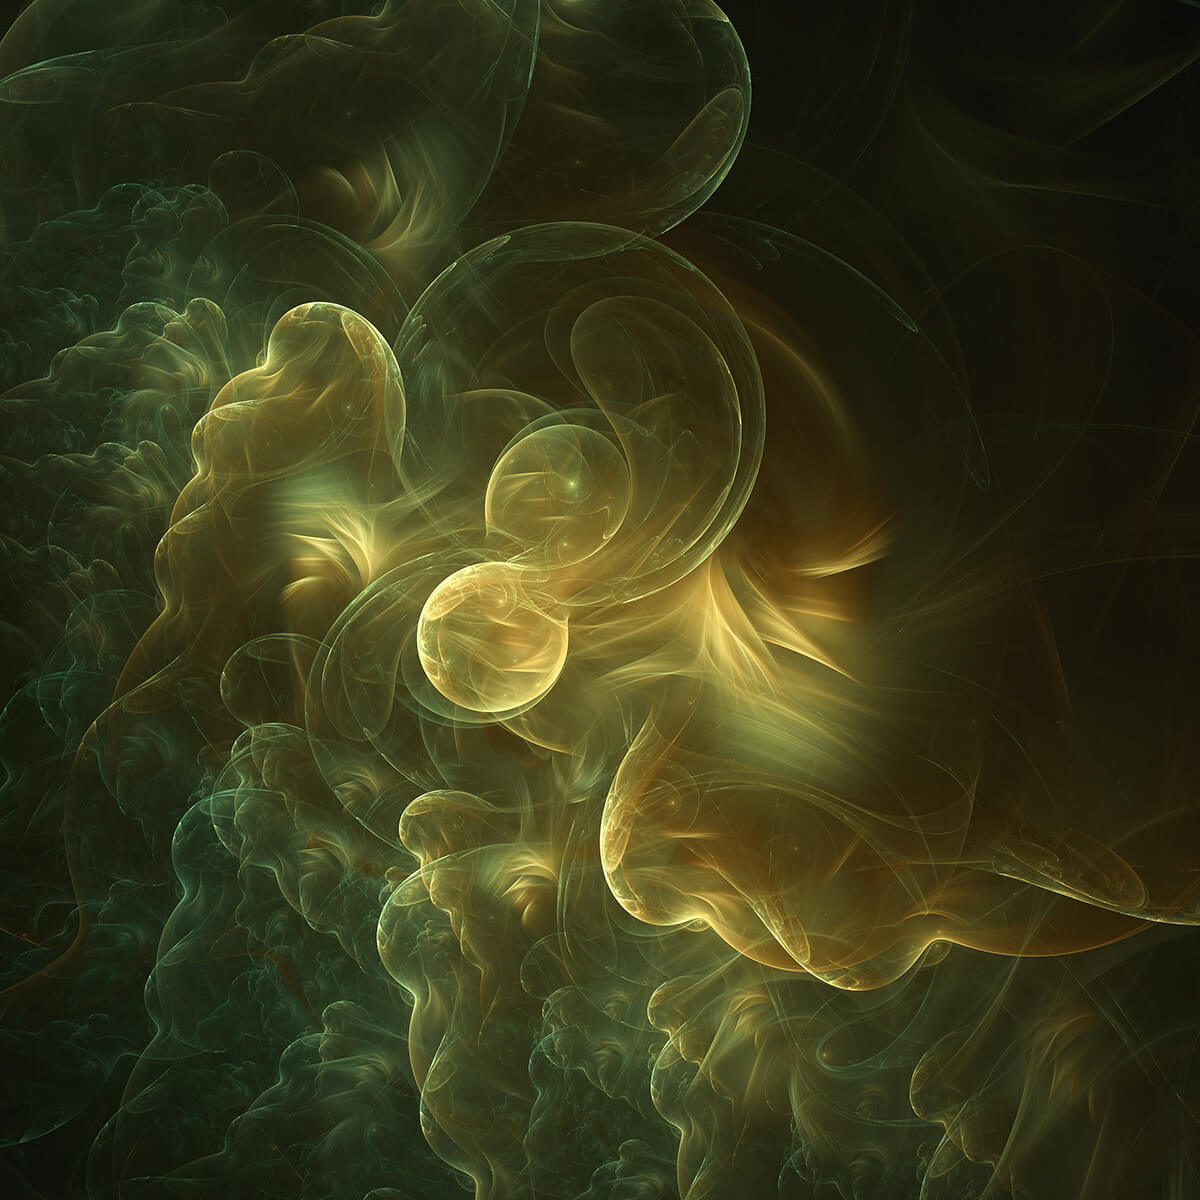 3D render of fractal green fluids